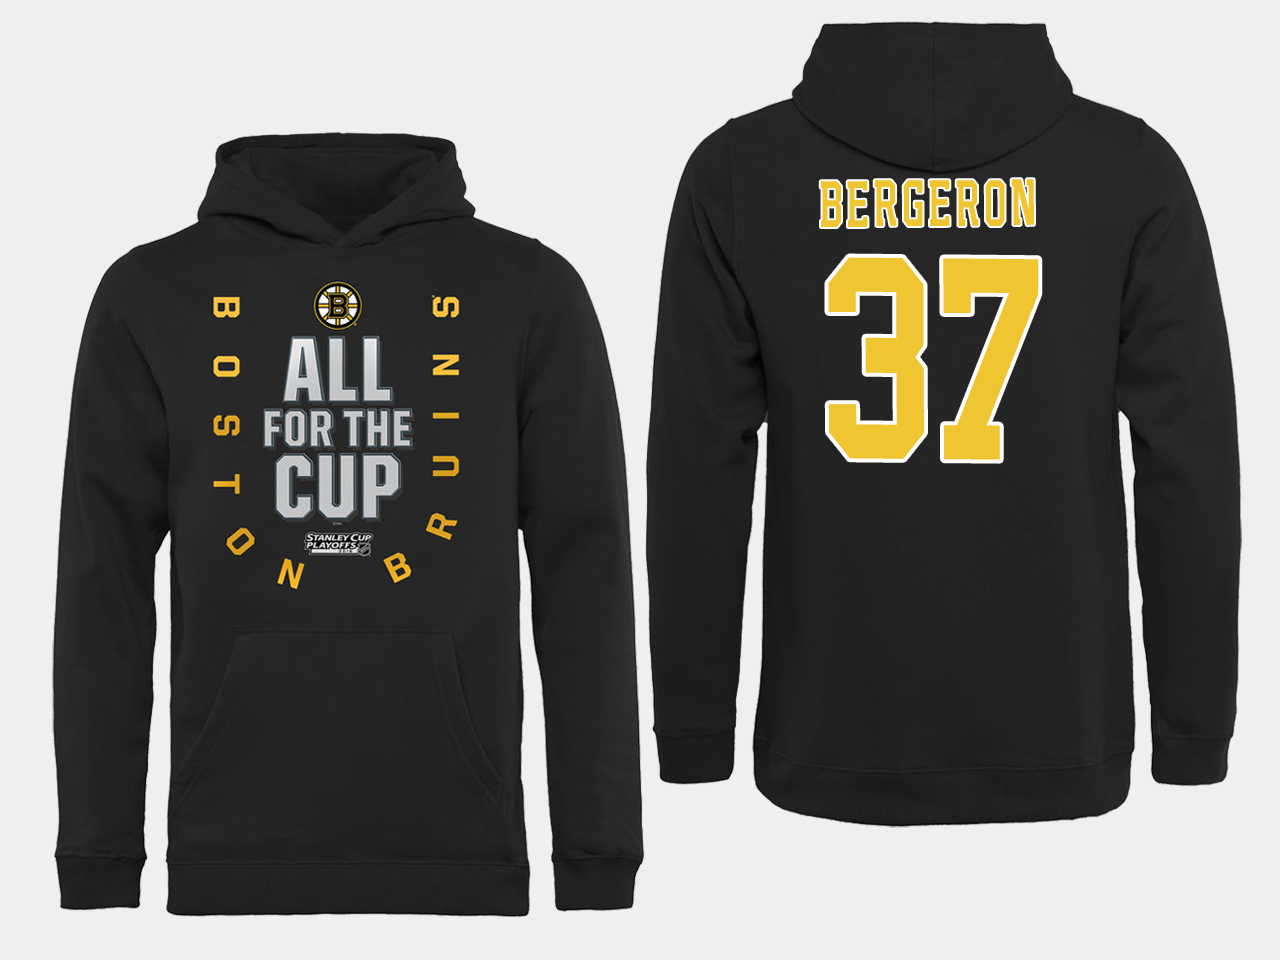 NHL Men Boston Bruins 37 Bergeron Black All for the Cup Hoodie